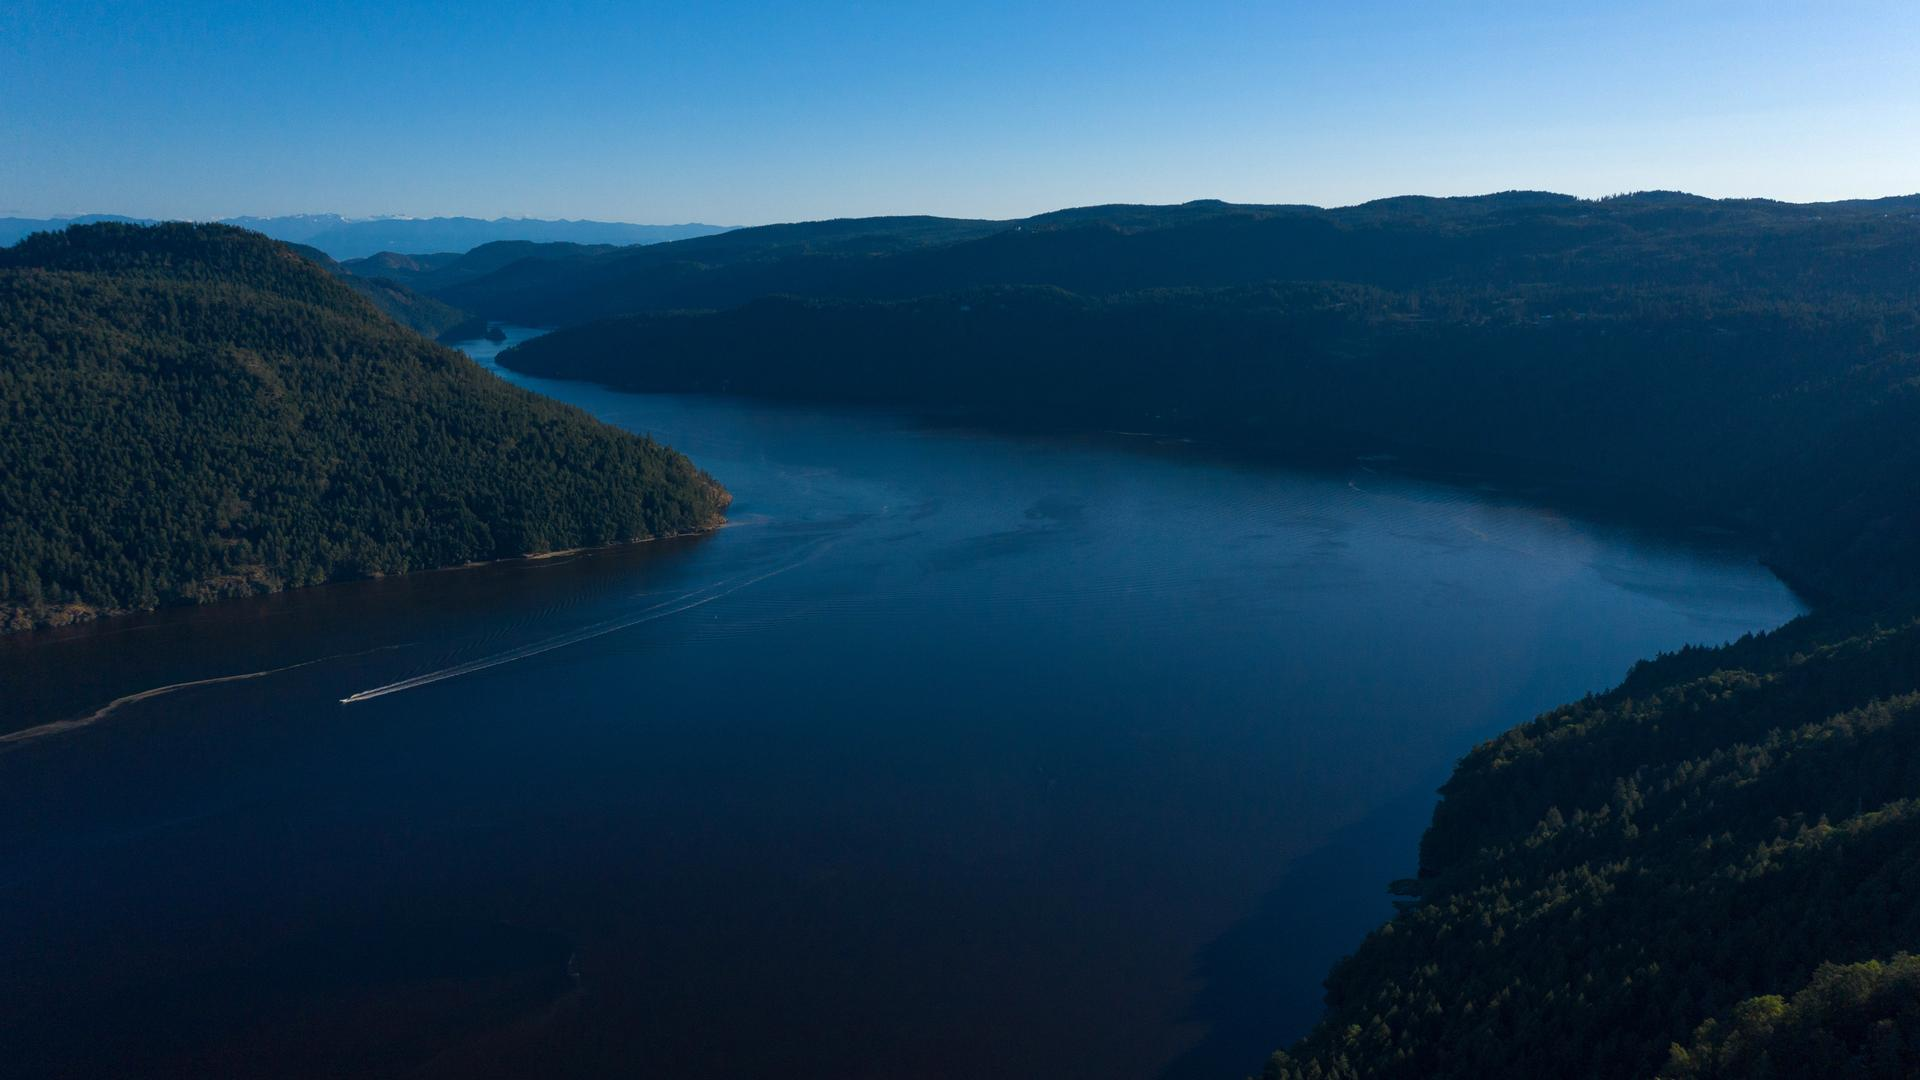 A beautiful river view from the Malahat Skywalk in Vancouver